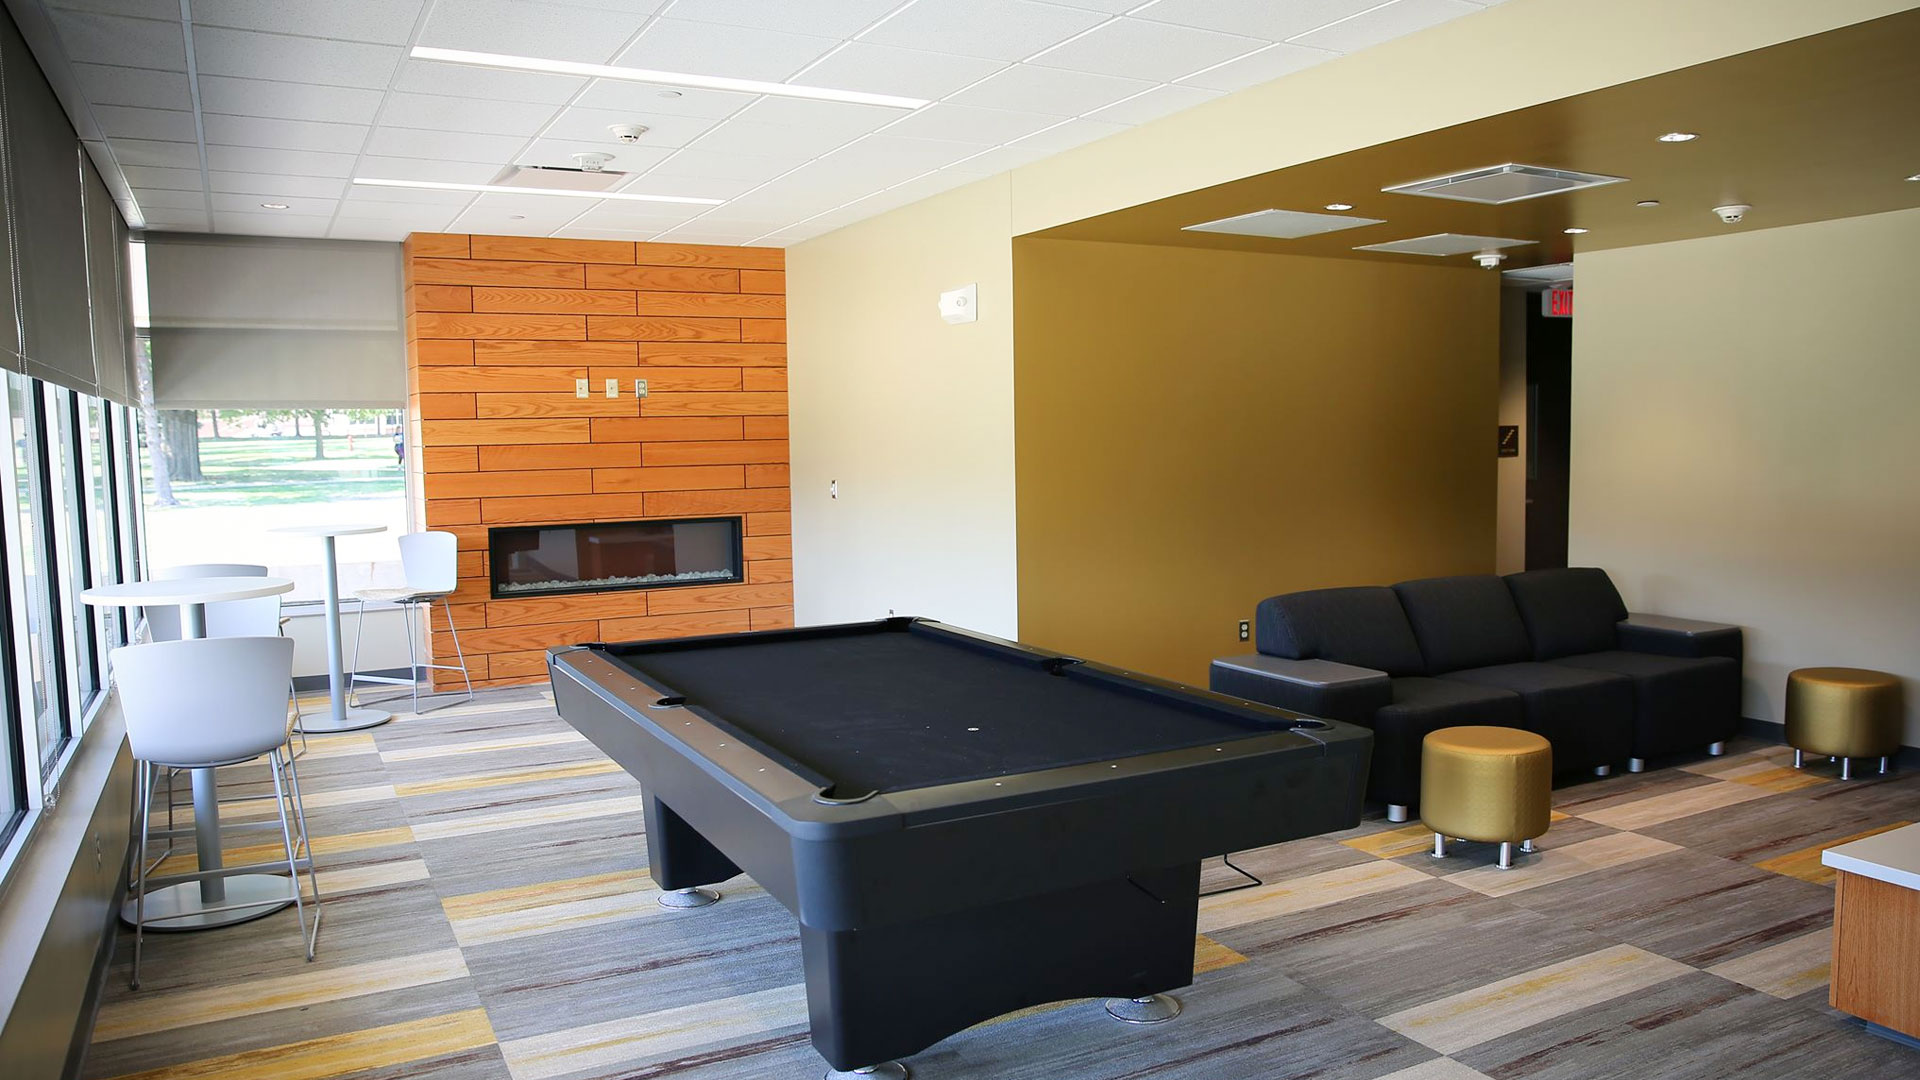 Bowen Hall - Game room and lounge